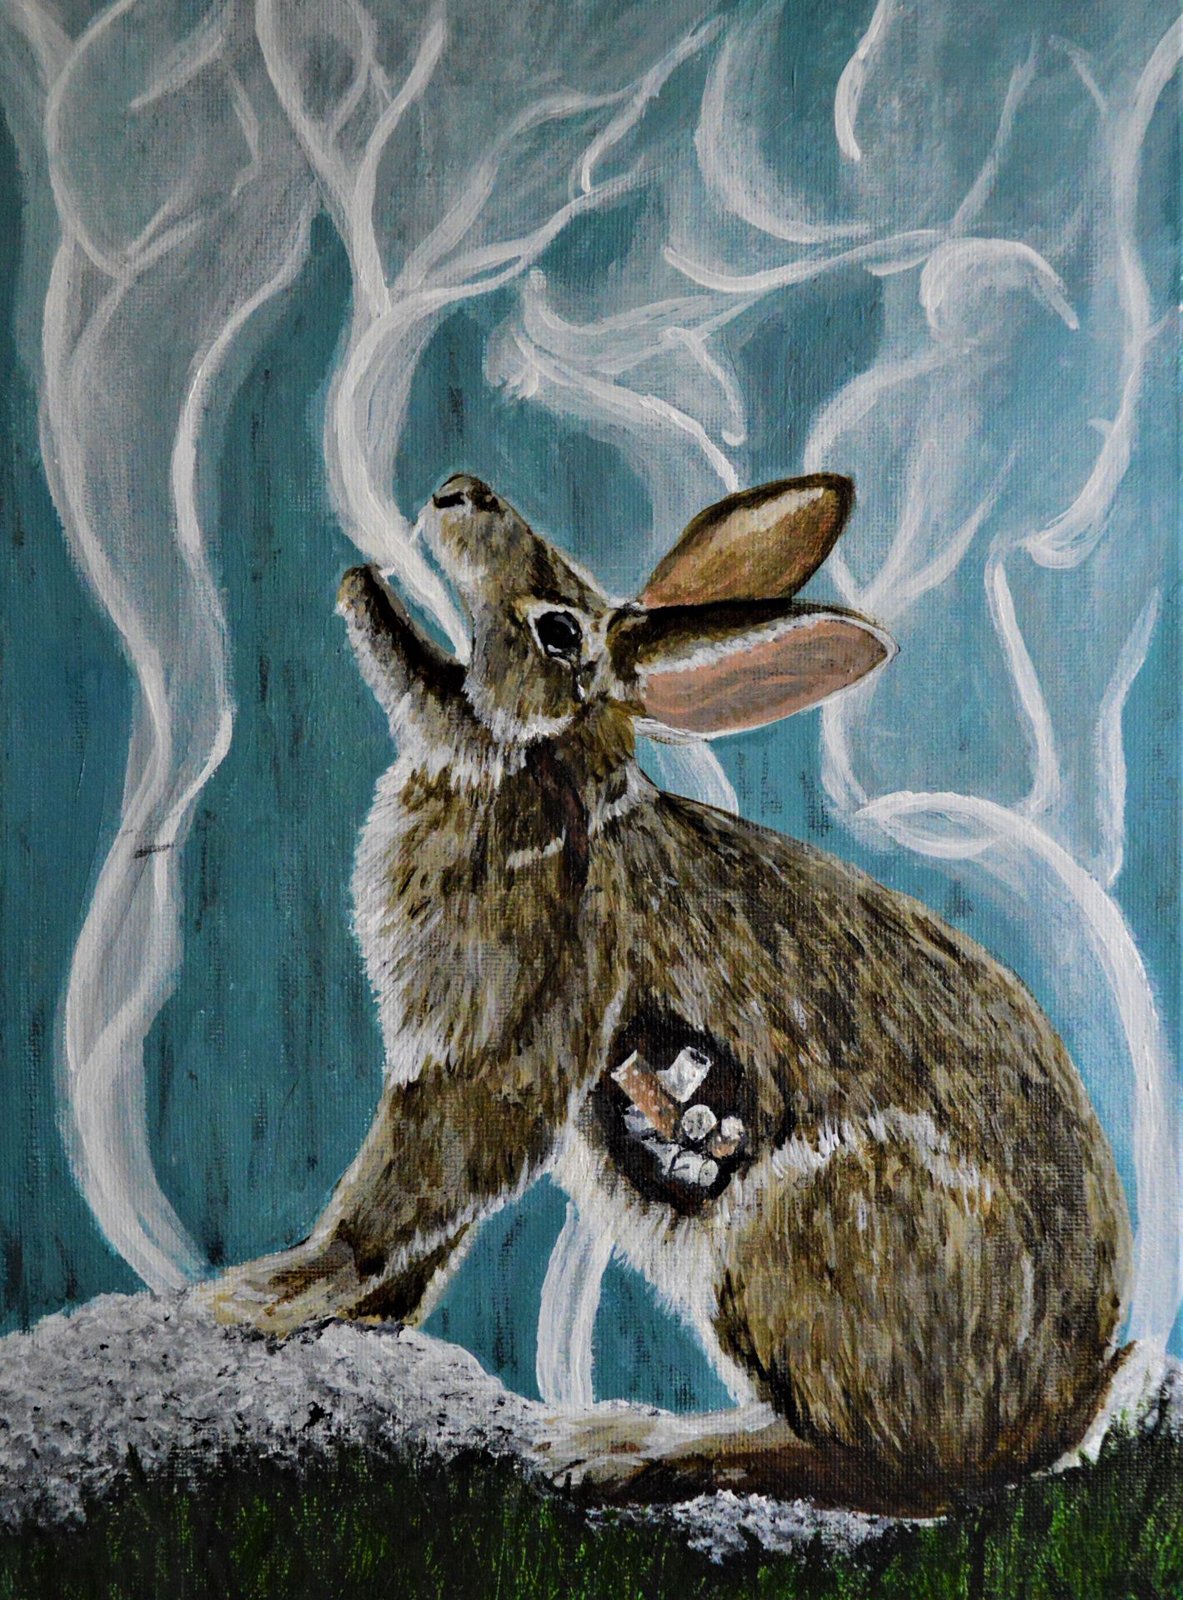 Smoked Out - Deanna Hoffner